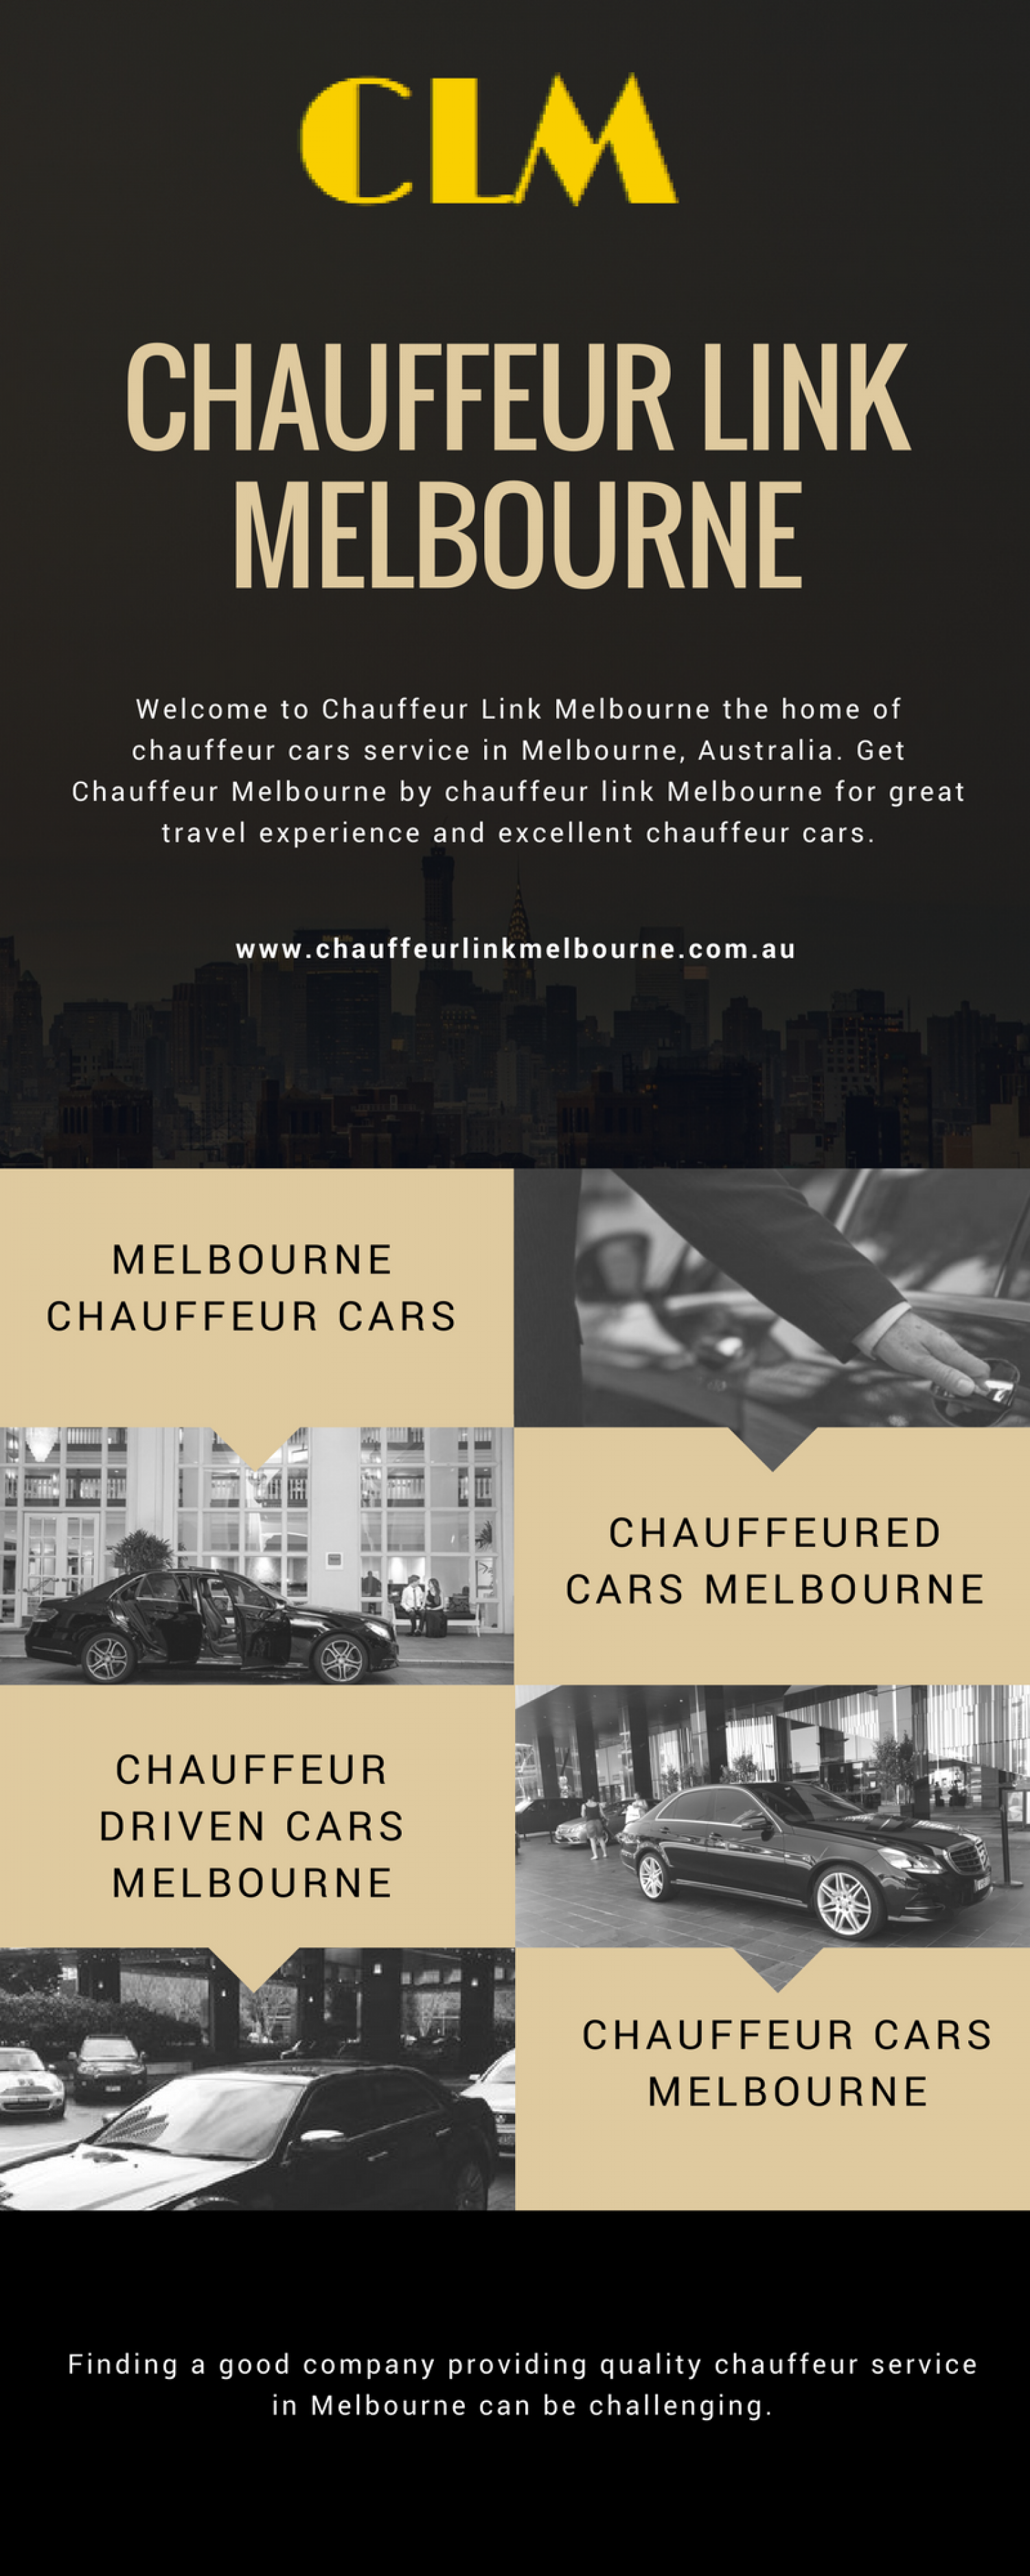 Reserve Chauffeur Cars in Melbourne Infographic